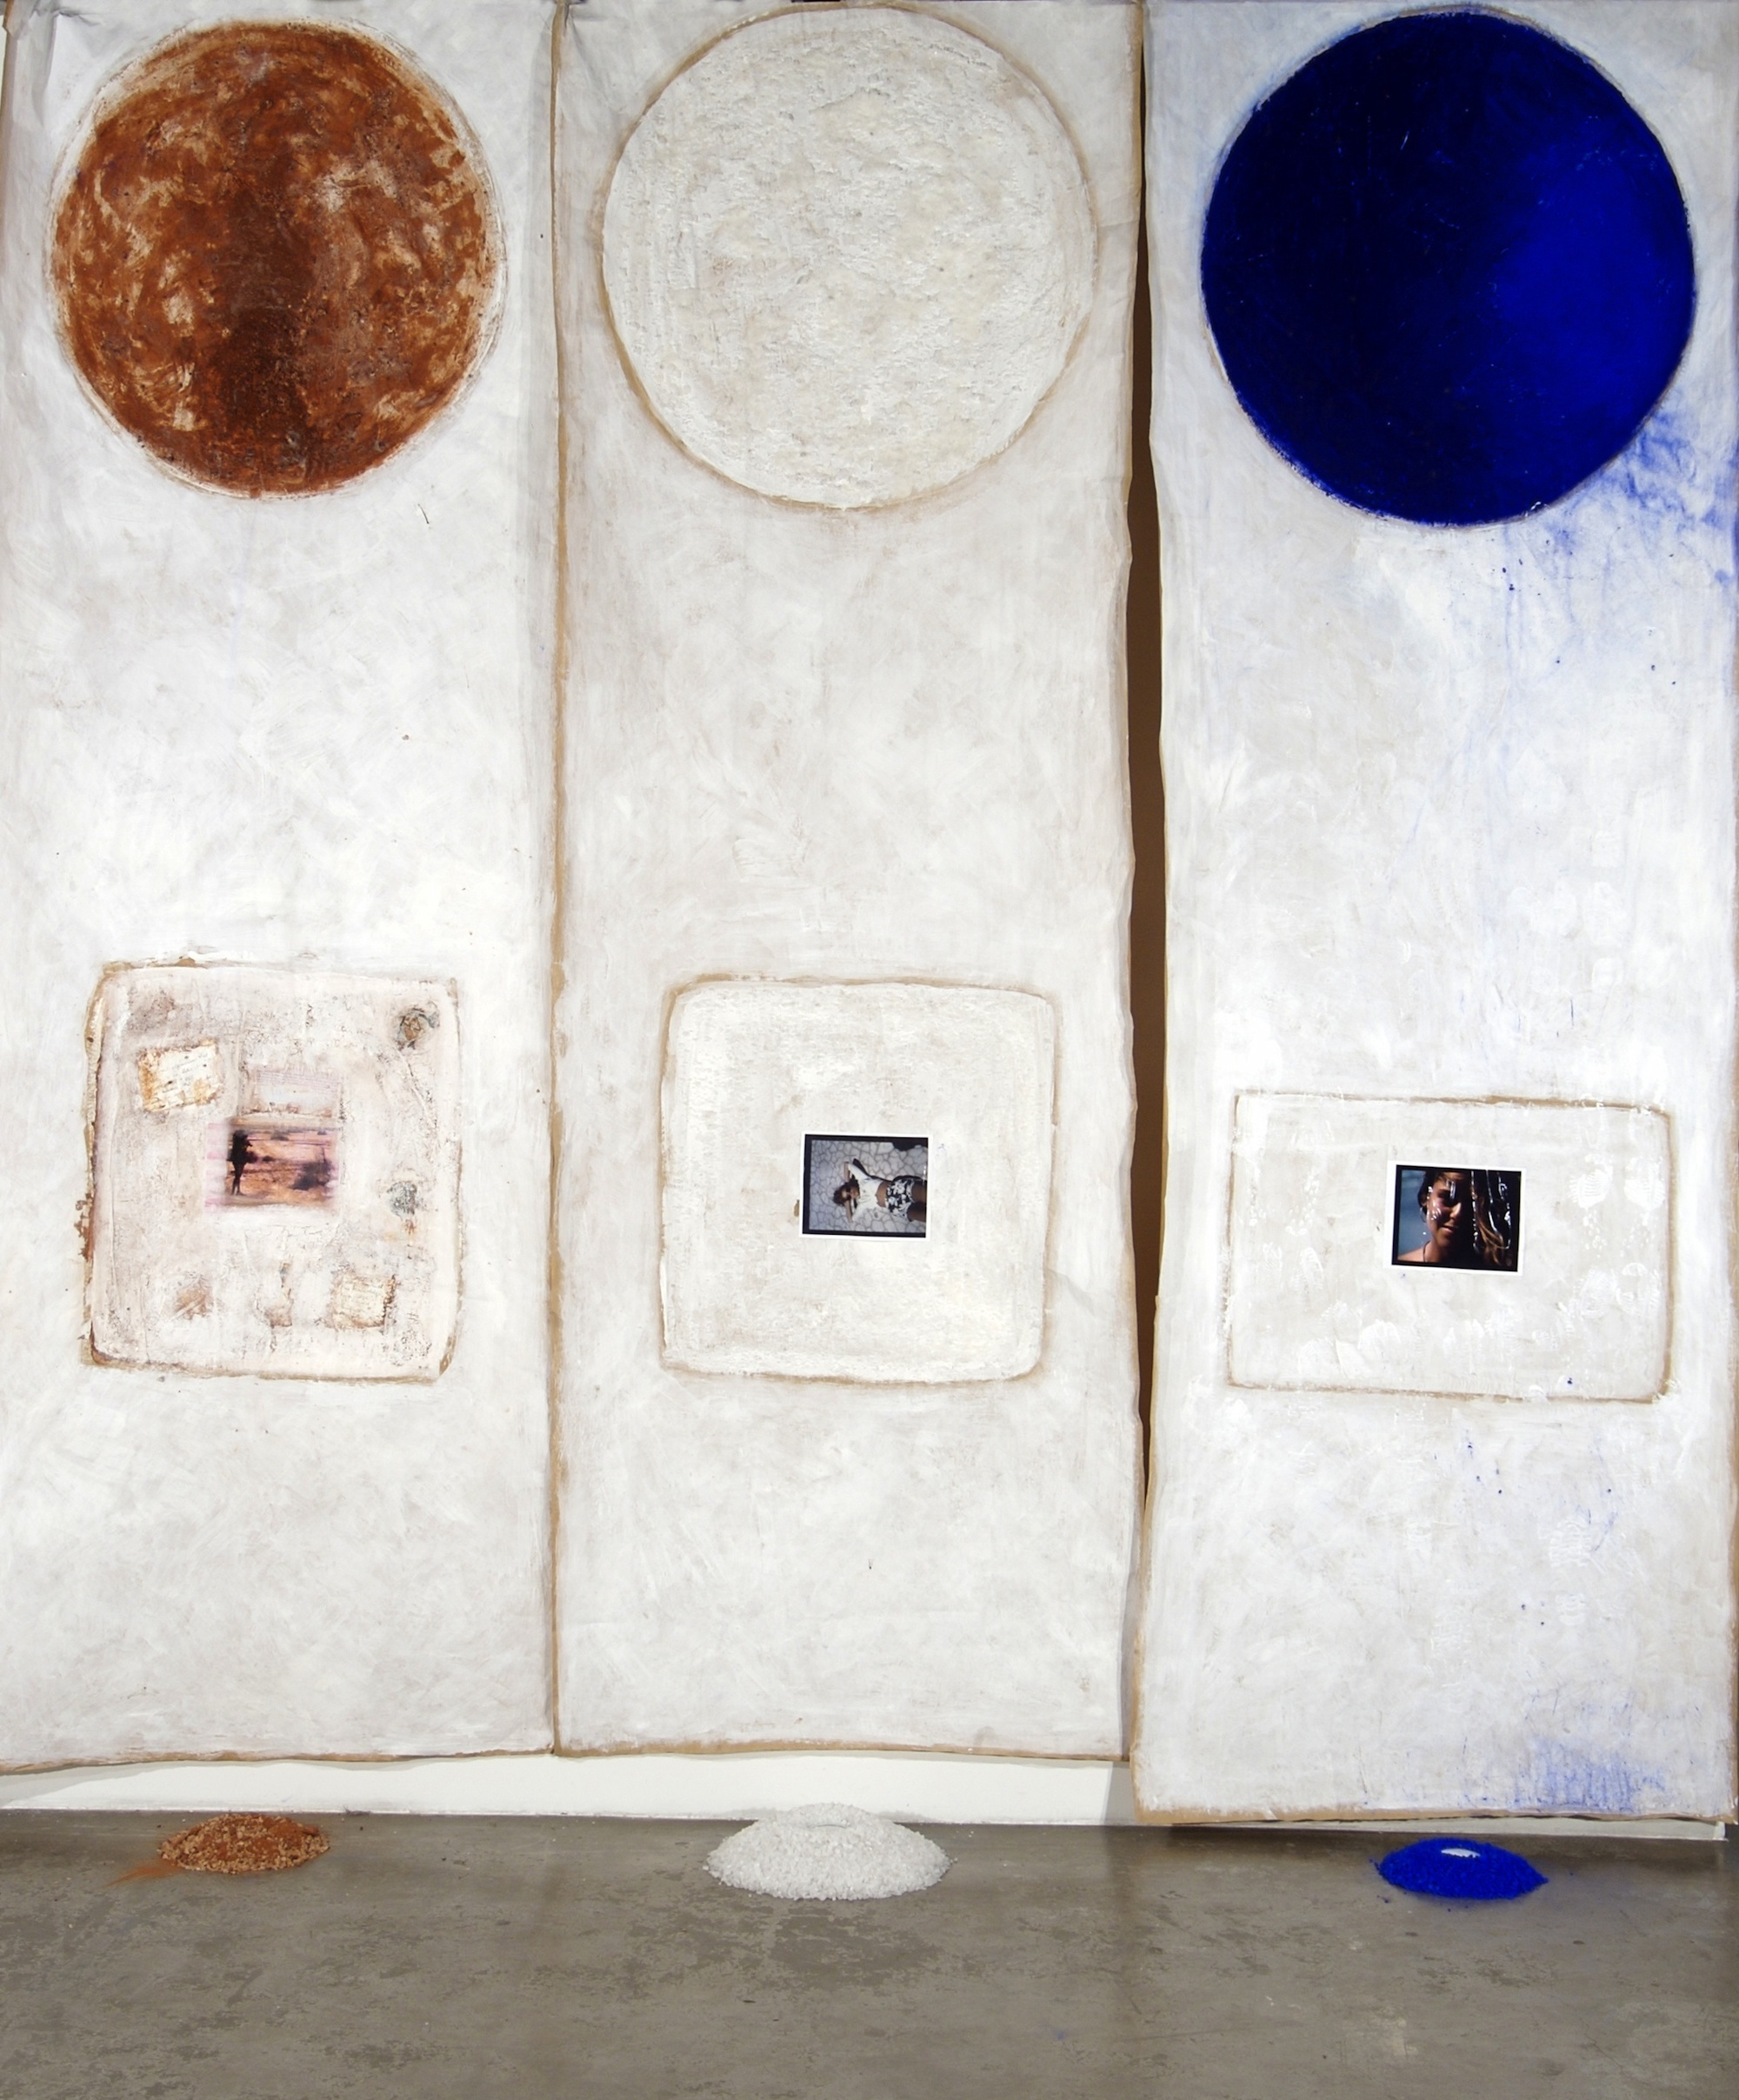 Luigia Martelloni, 2010,  The Journey: Sea, Earth, Sky,  Mix media on paper, dirt, salt, pigments, photograph, mirrors 144 x 48 inches each.jpg